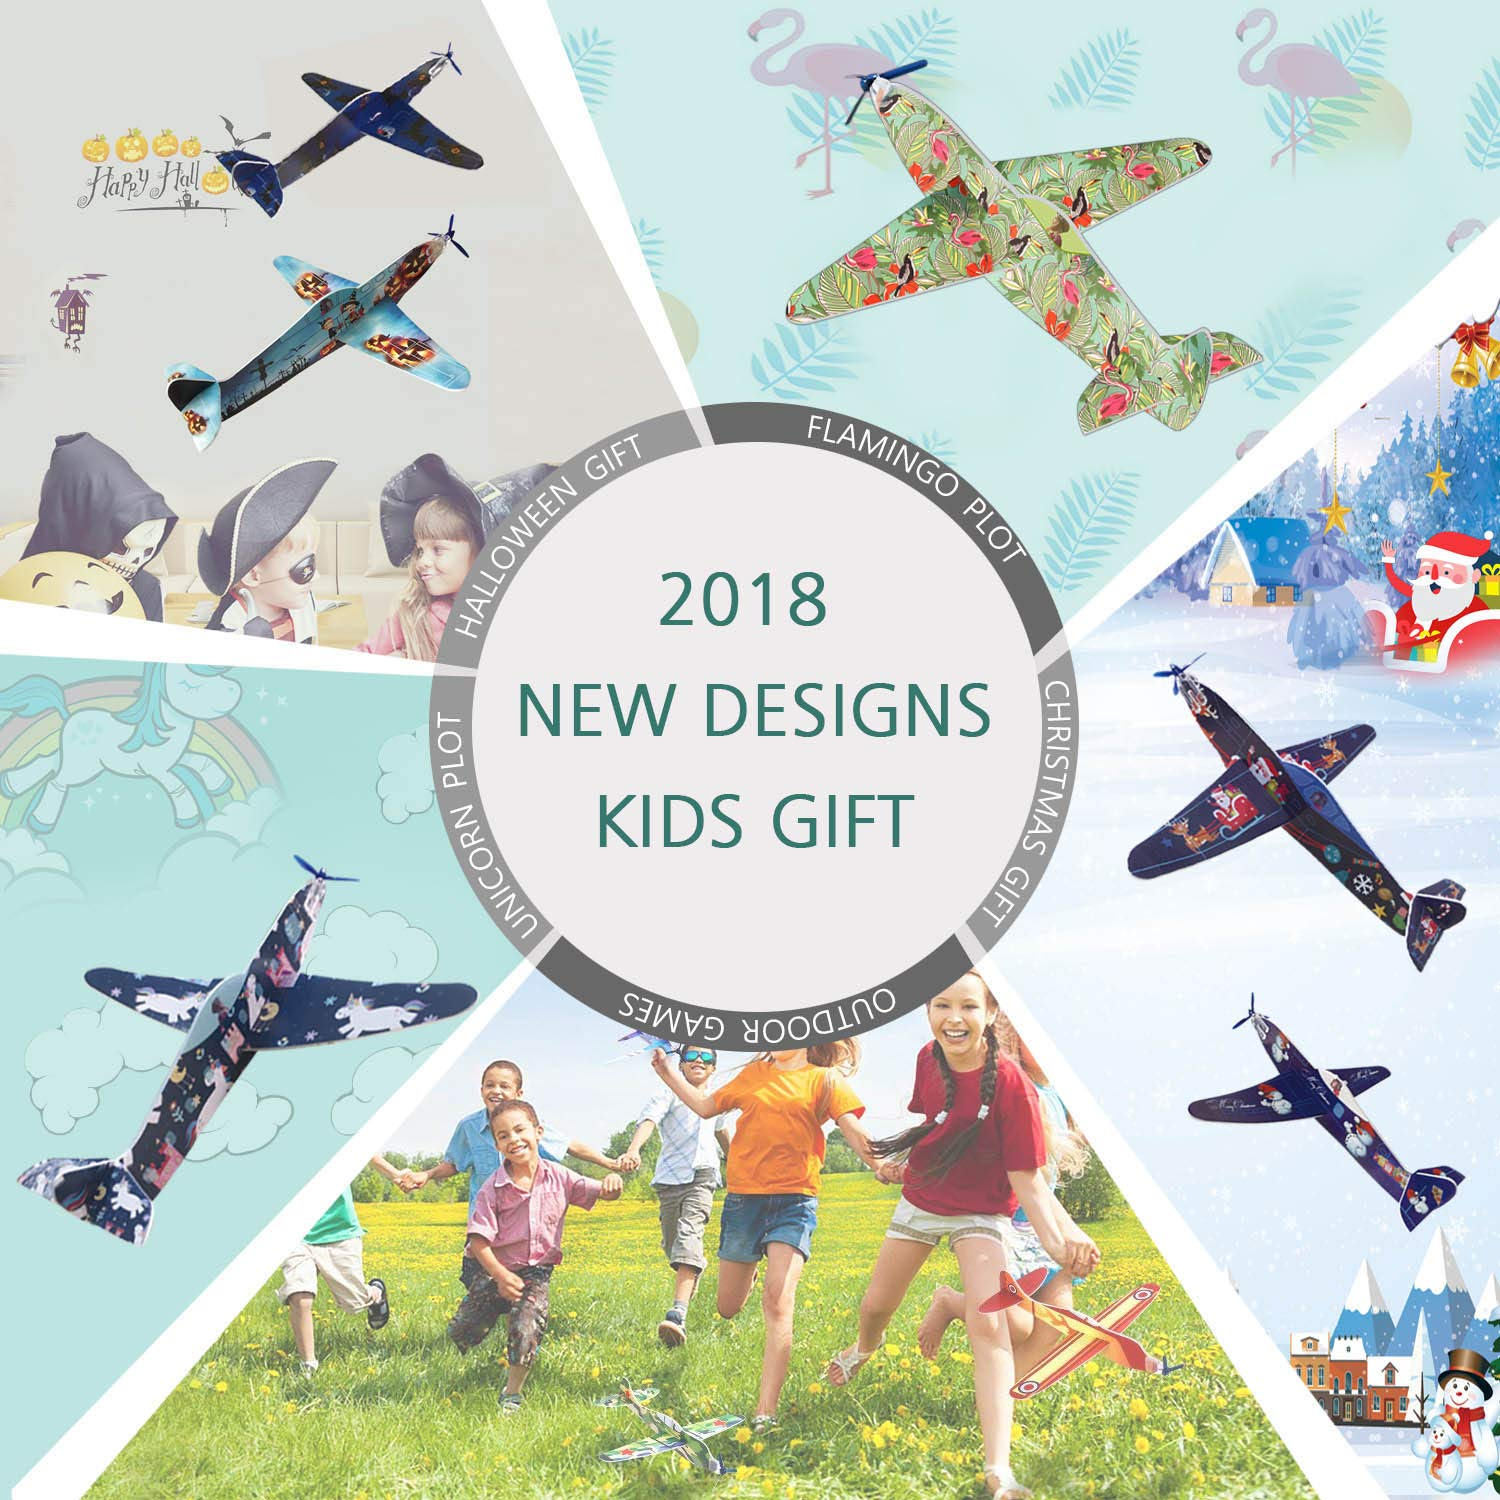 Smilkat Glider Plane Party Favors - 12 New Models 24 Pack 8 inch Flying Styrofoam Airplanes, Easy Assembly, Kids Toy for Birthday Party, School Classroom Rewards Carnival Prizes by Smilkat (Image #1)